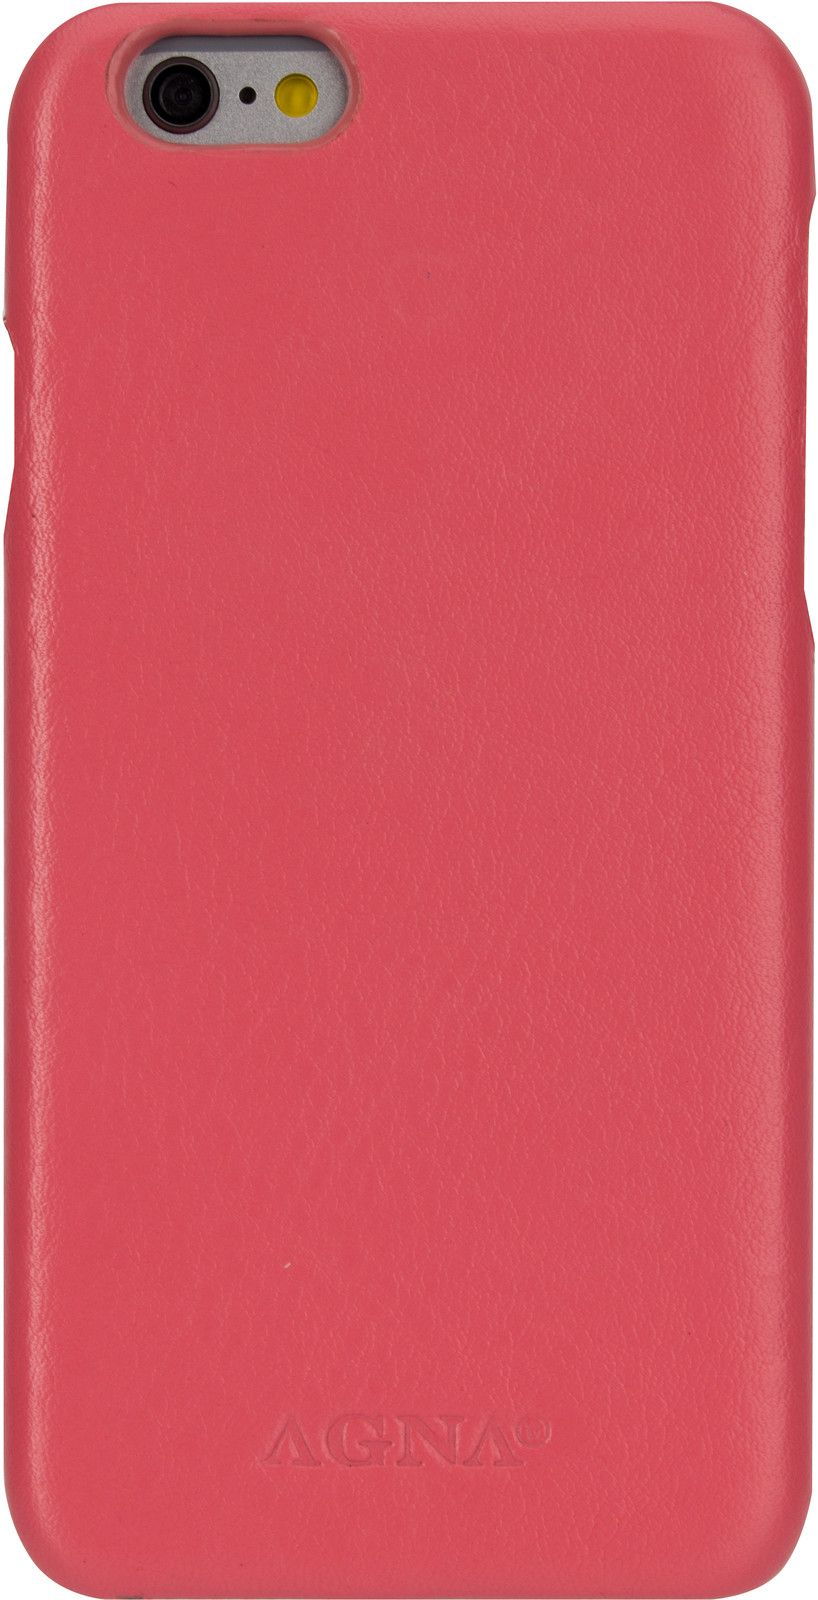 Agna iPlate Real Leather (iPhone 6 6S) - iPhonebutiken.se f53c654f14a36